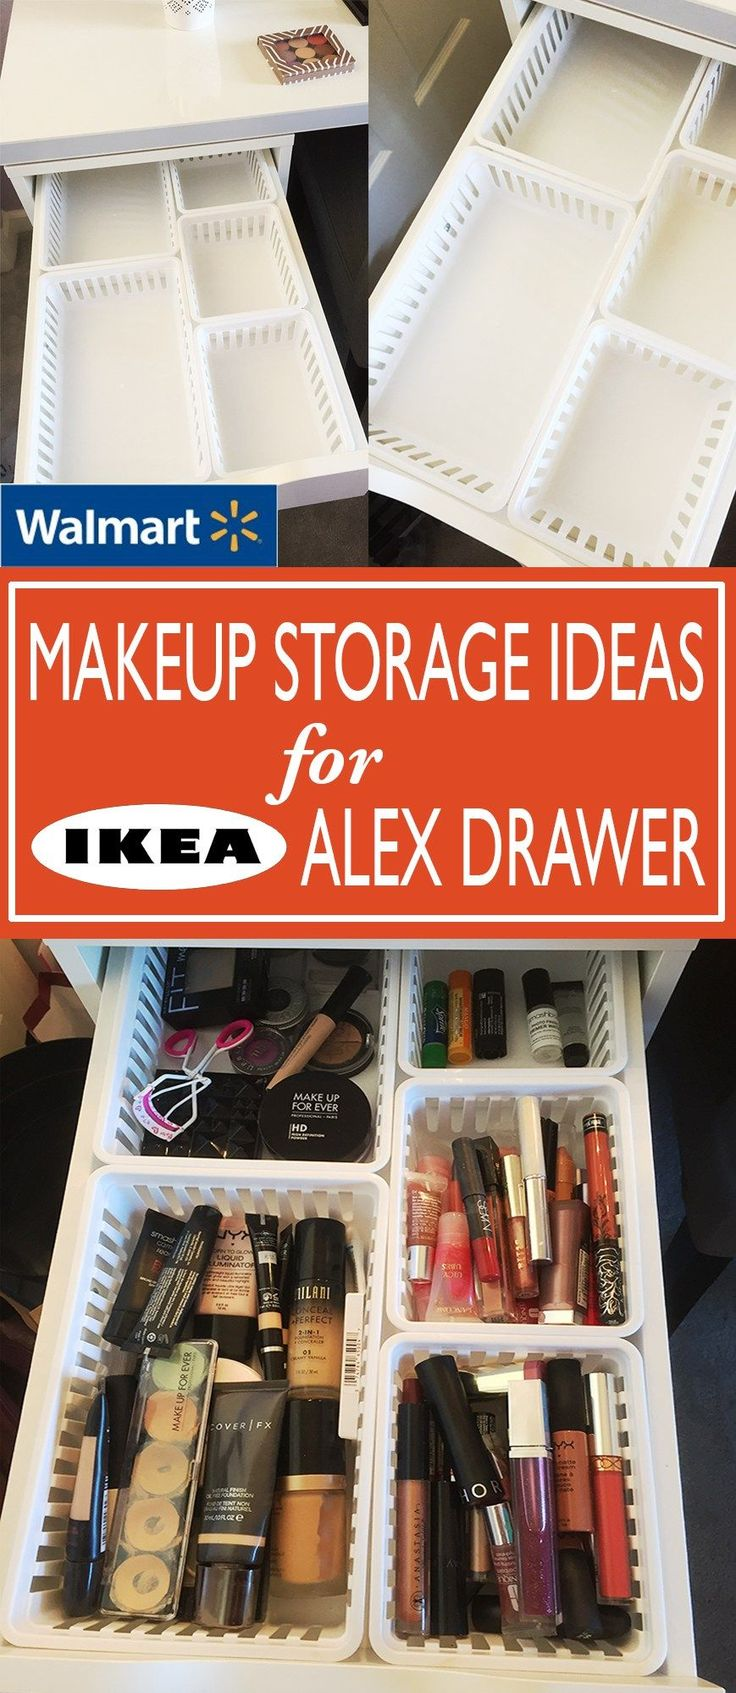 Walmart Makeup Storage Ideas for Ikea Alex Drawer Pin